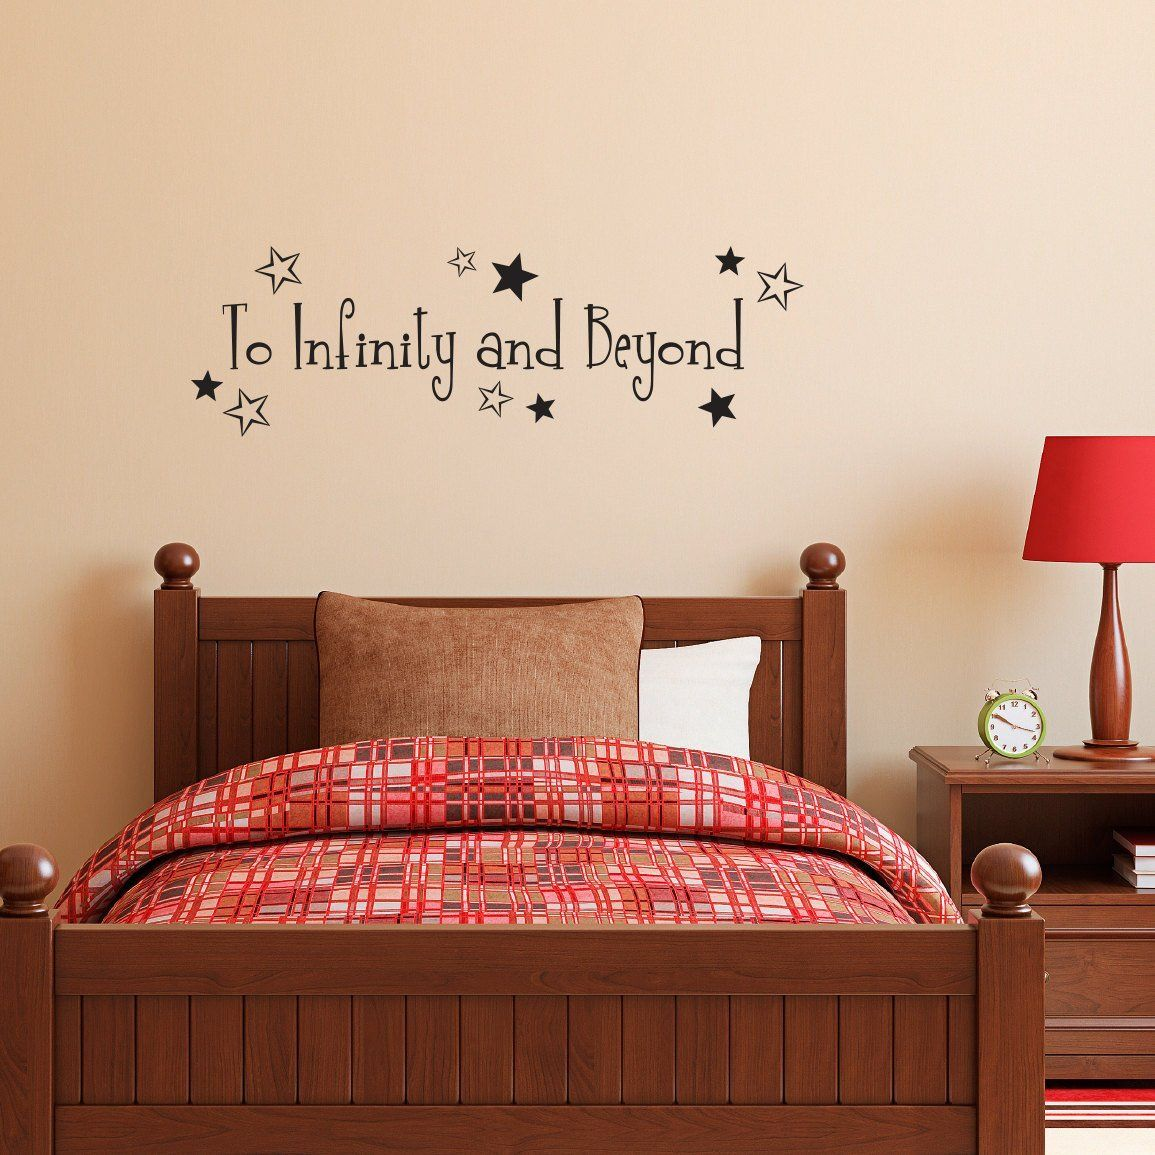 To infinity and beyond quote decal boy bedroom wall decal medium